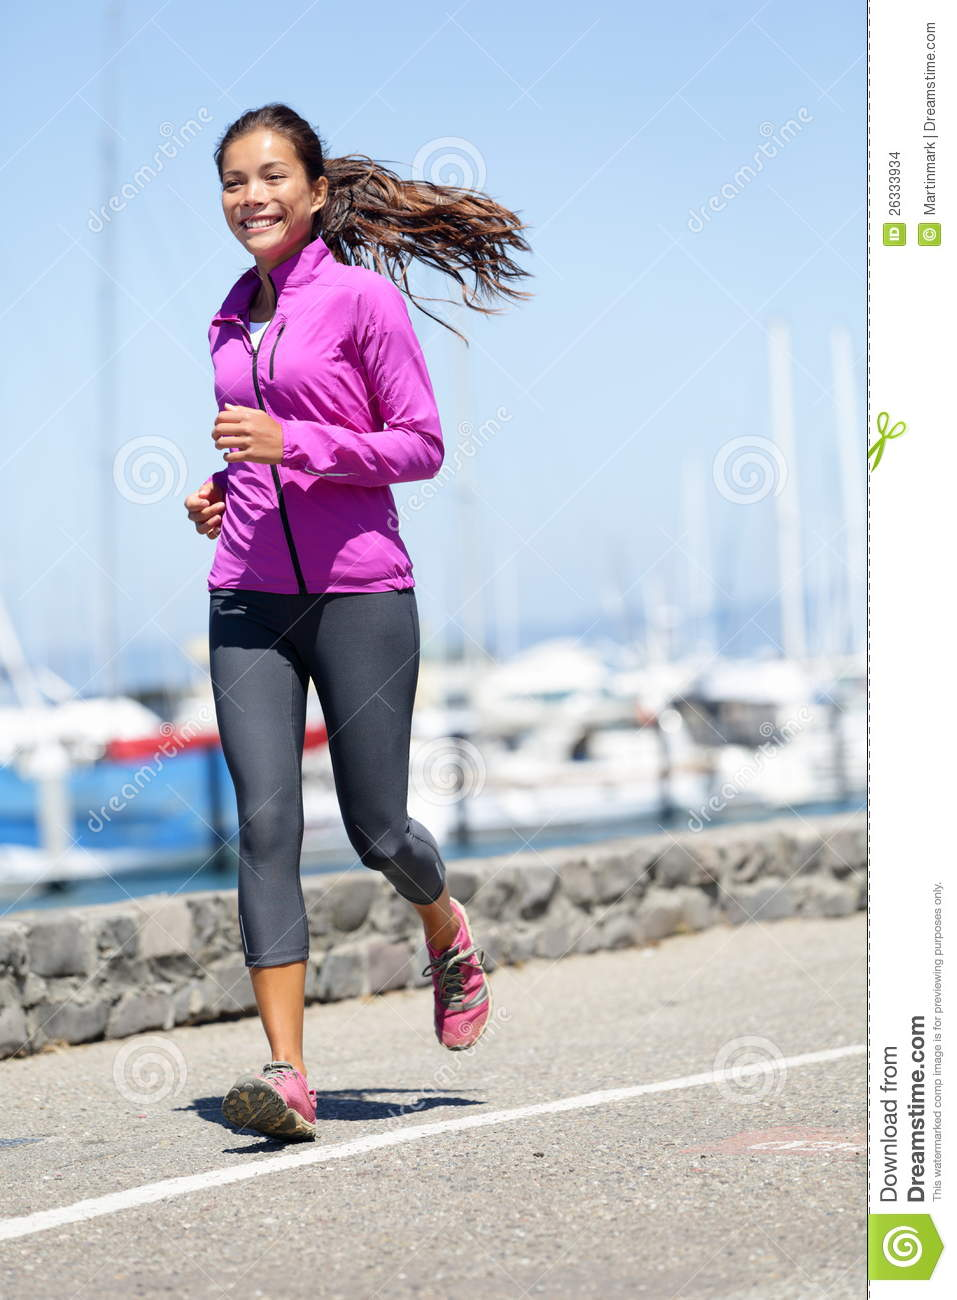 88ffd9993269 Woman running stock photo. Image of blue